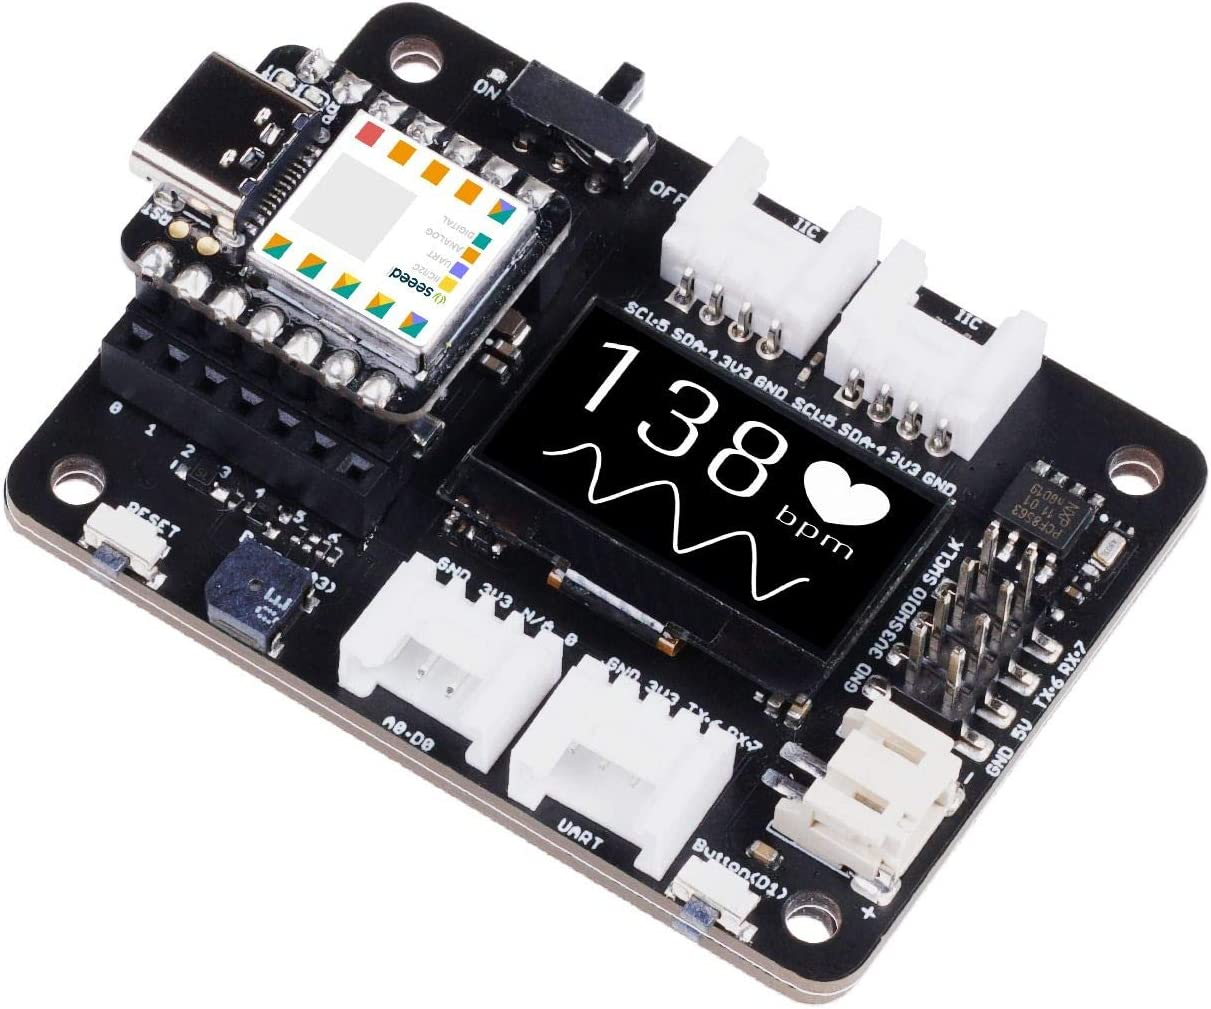 Seeeduino XIAO Expansion Board Quick Prototyping Rich peripherals No Soldering Needed Circuit Python Supported